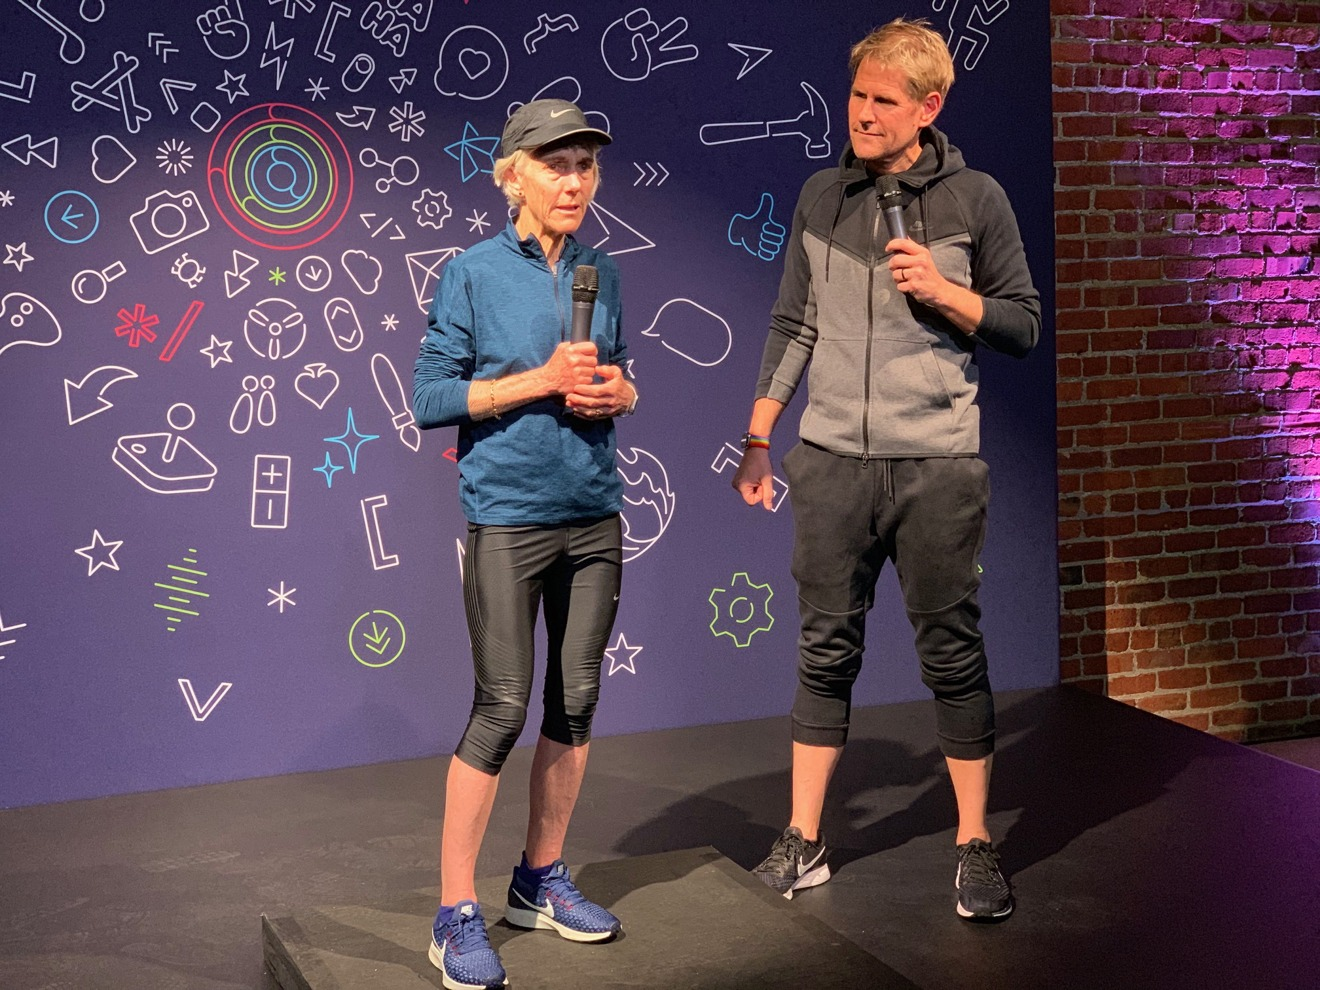 Apple's Jay Blahnik introduces marathon superstar Joan Benoit Samuelson